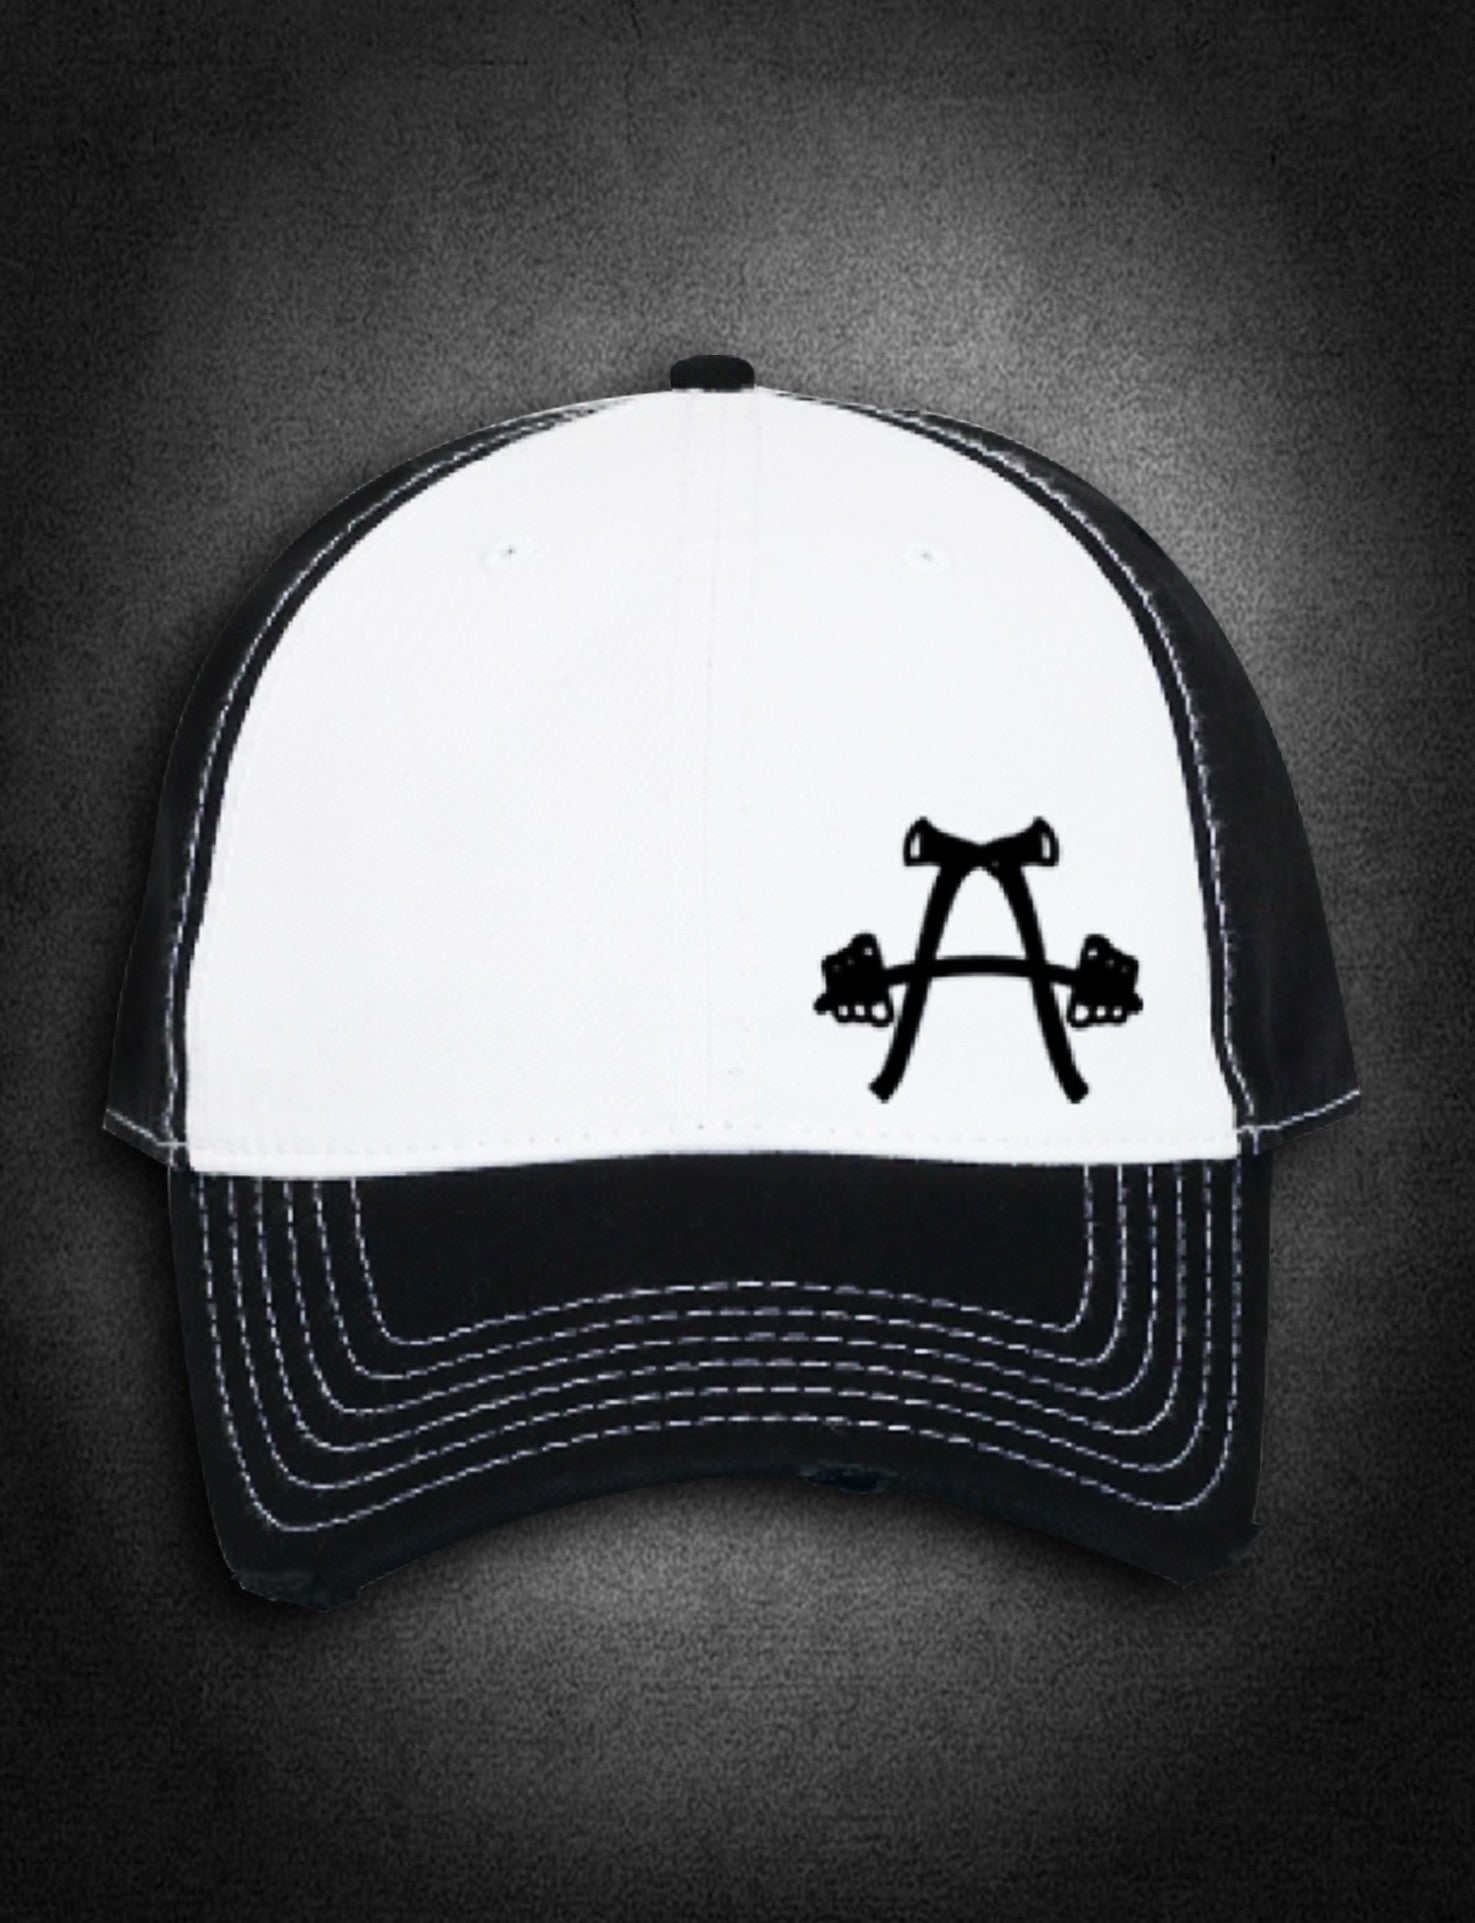 AFA Distressed Low Profile Hat Black/White - AmericanFireApparel  - 2